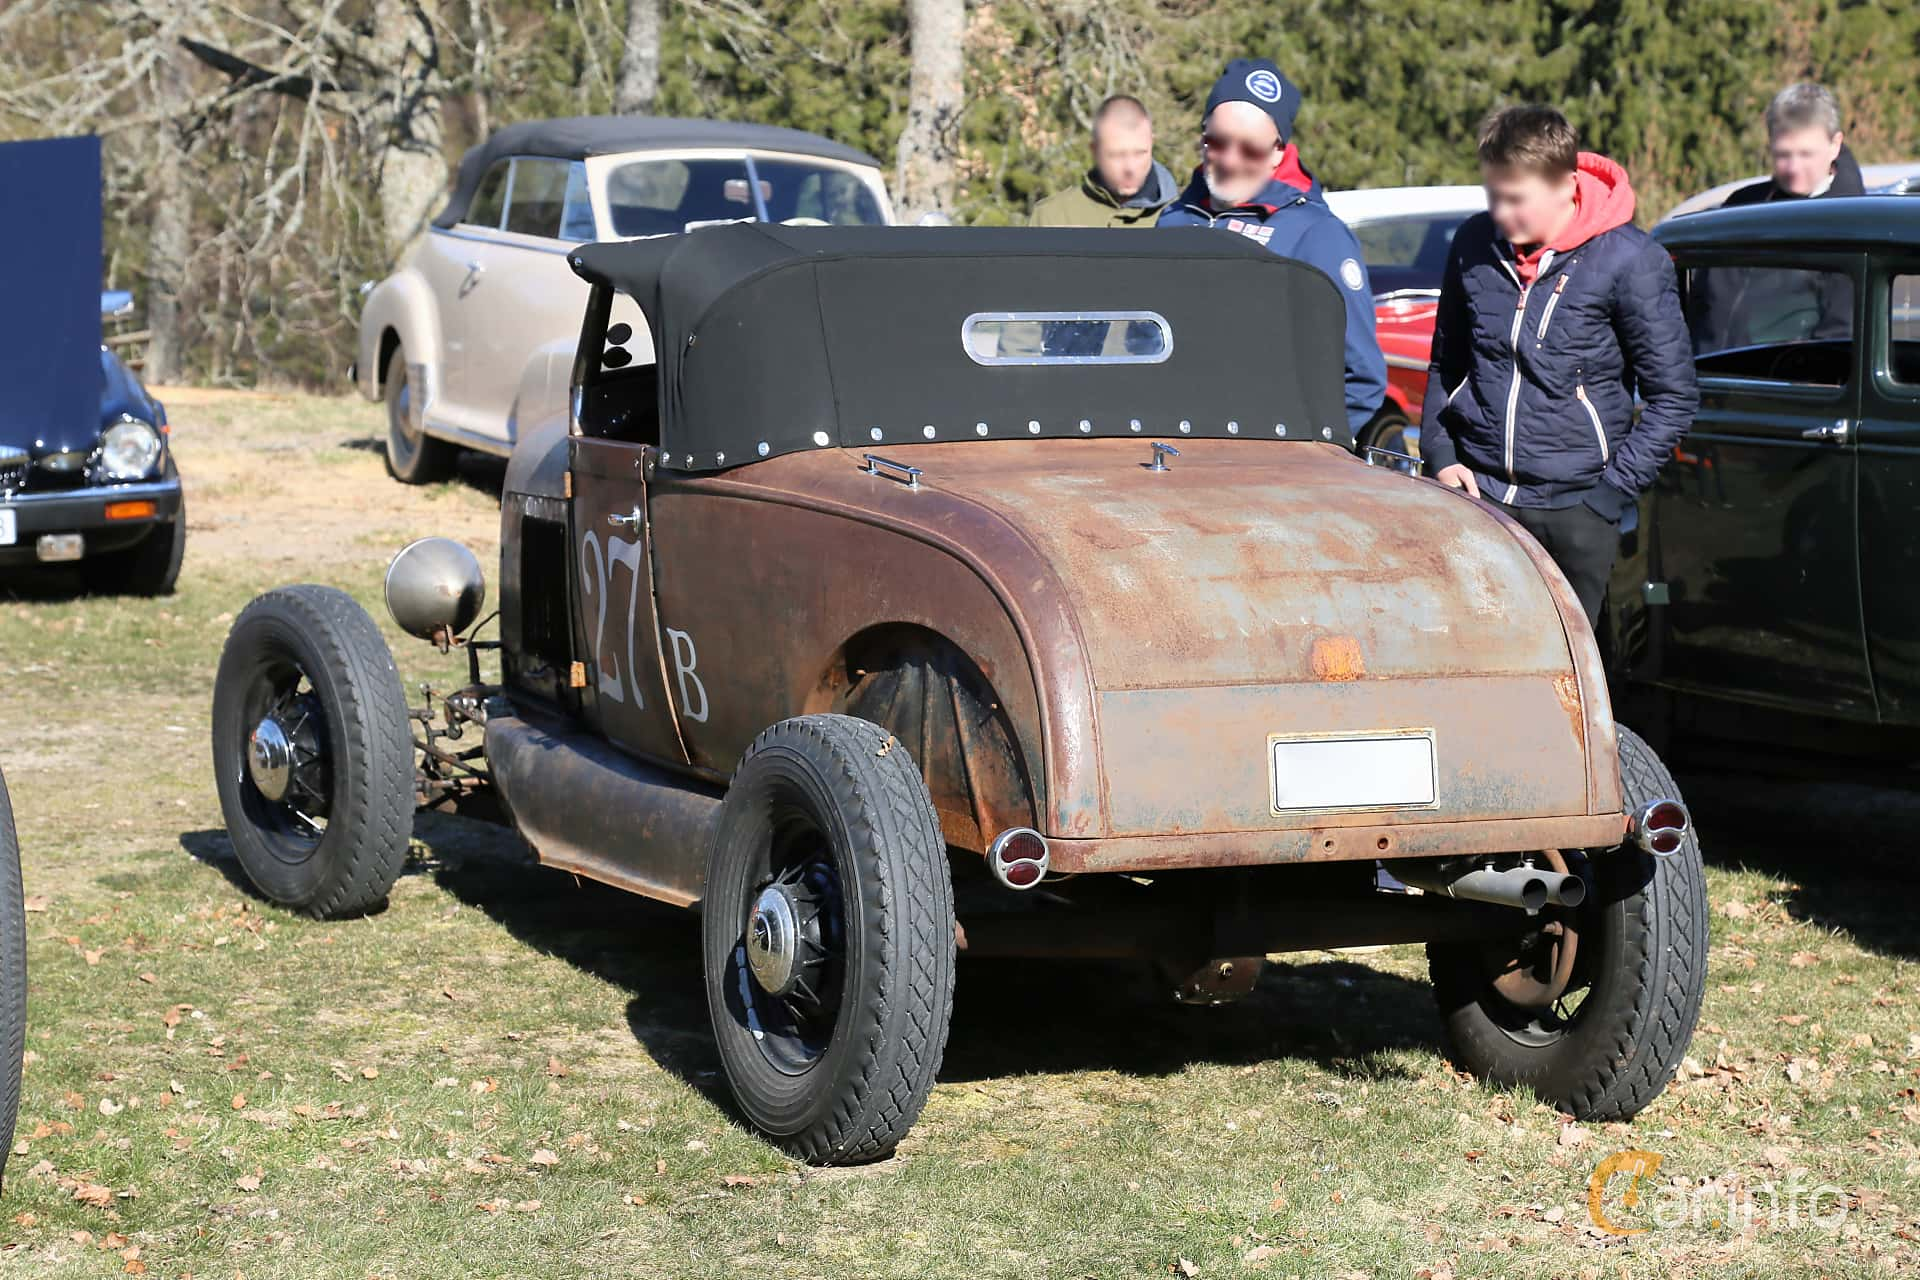 Ford Model A Roadster 3.3 Manual, 41hp, 1929 at Uddevalla Veteranbilsmarknad Backamo, Ljungsk 2019